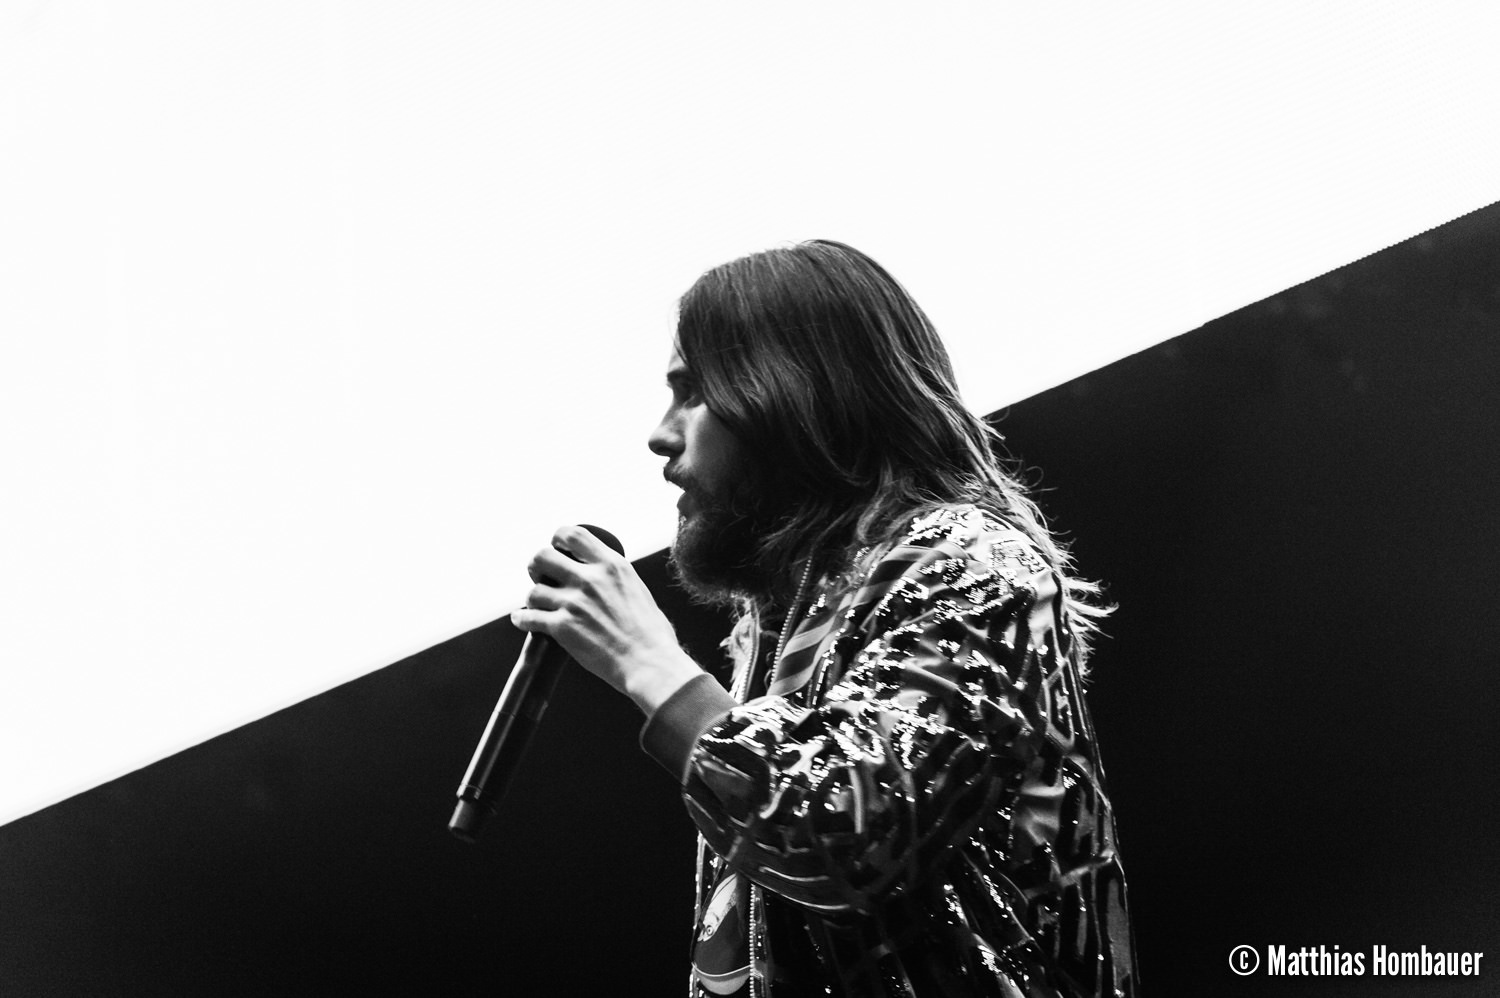 30 Seconds to Mars performing their Monolith Tour on 17. April 2018 in the Stadthalle, Vienna. Austria